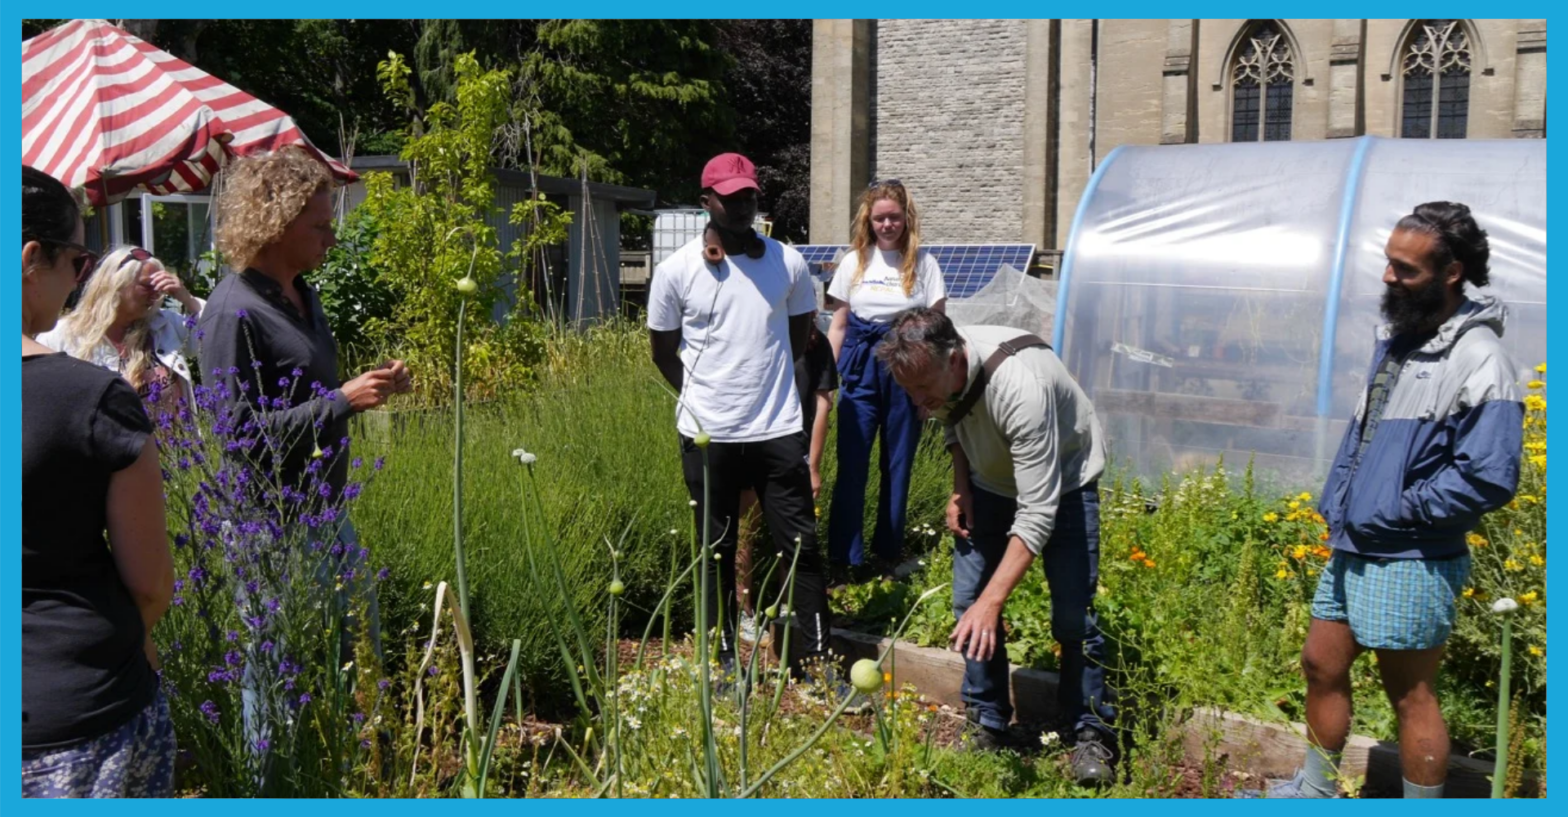 The team at Grounded Community standing in a sunny garden